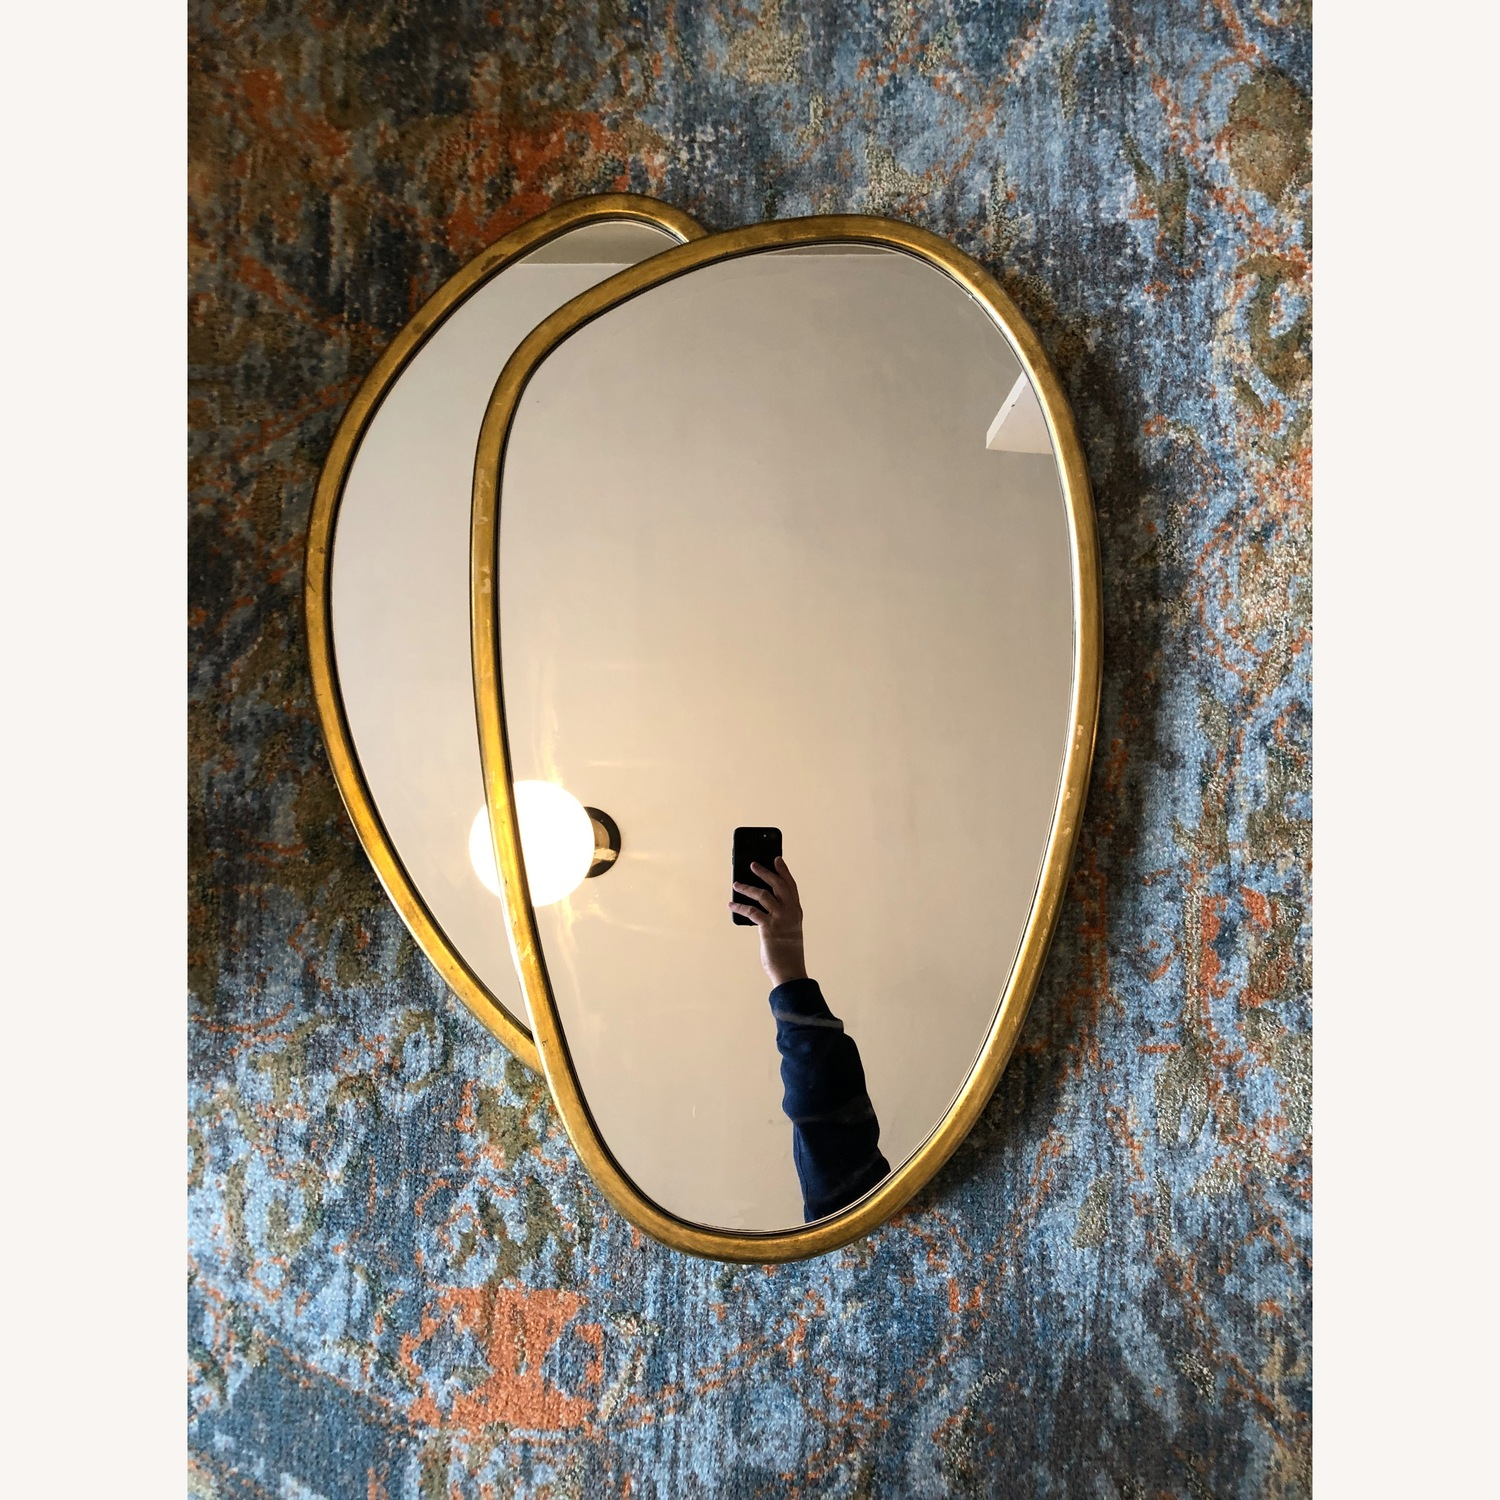 Organic Forms Shapes Gold Leaf Mirror - image-12